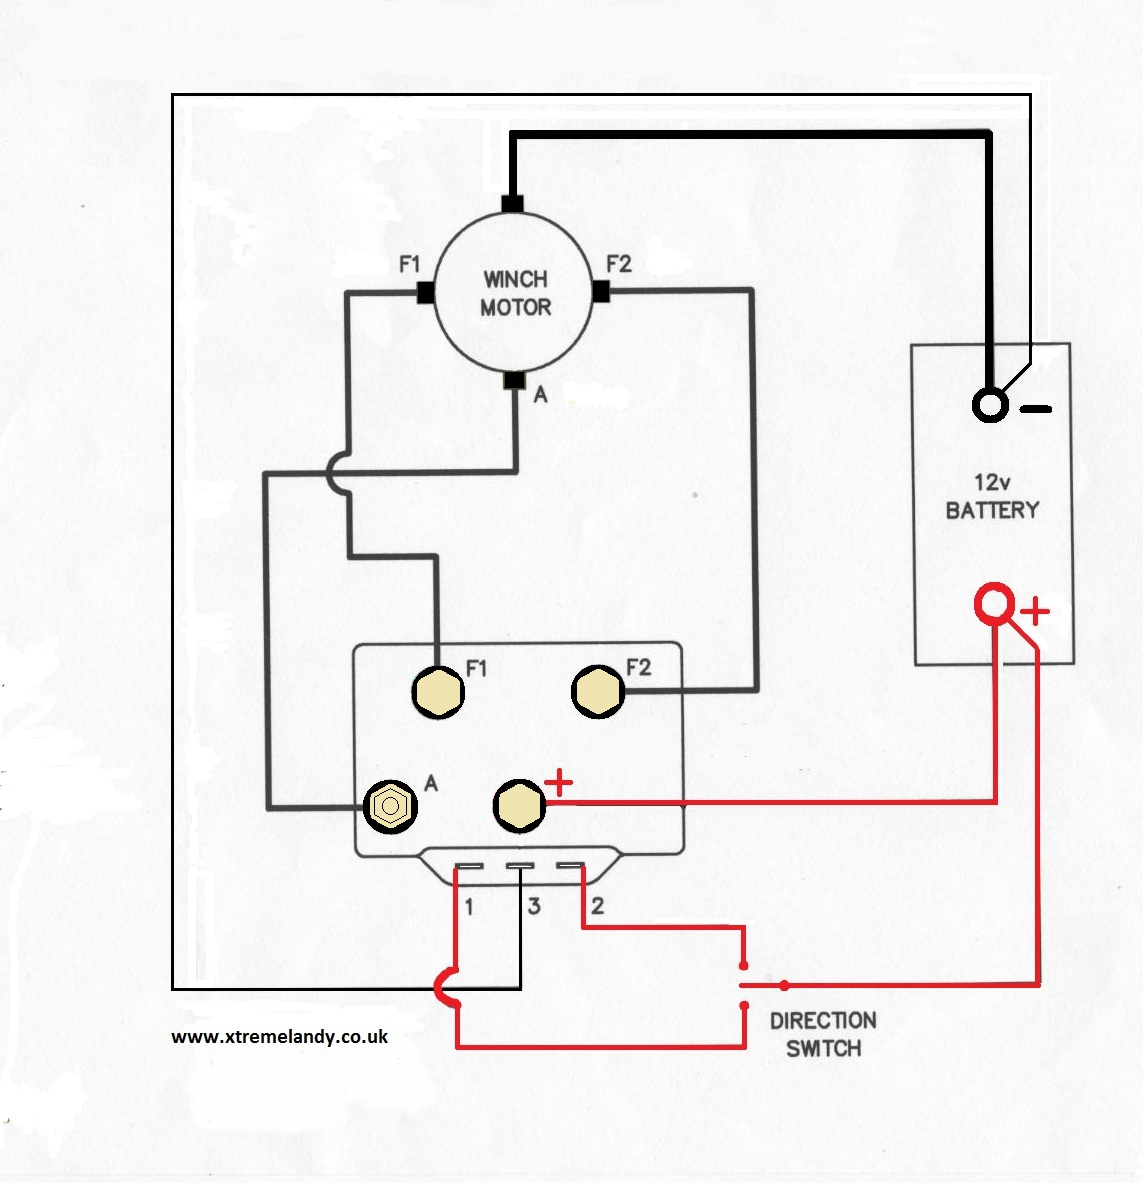 albright wiring diagram image downloadable manuals land rover discovery 1 wiring diagram pdf at gsmportal.co